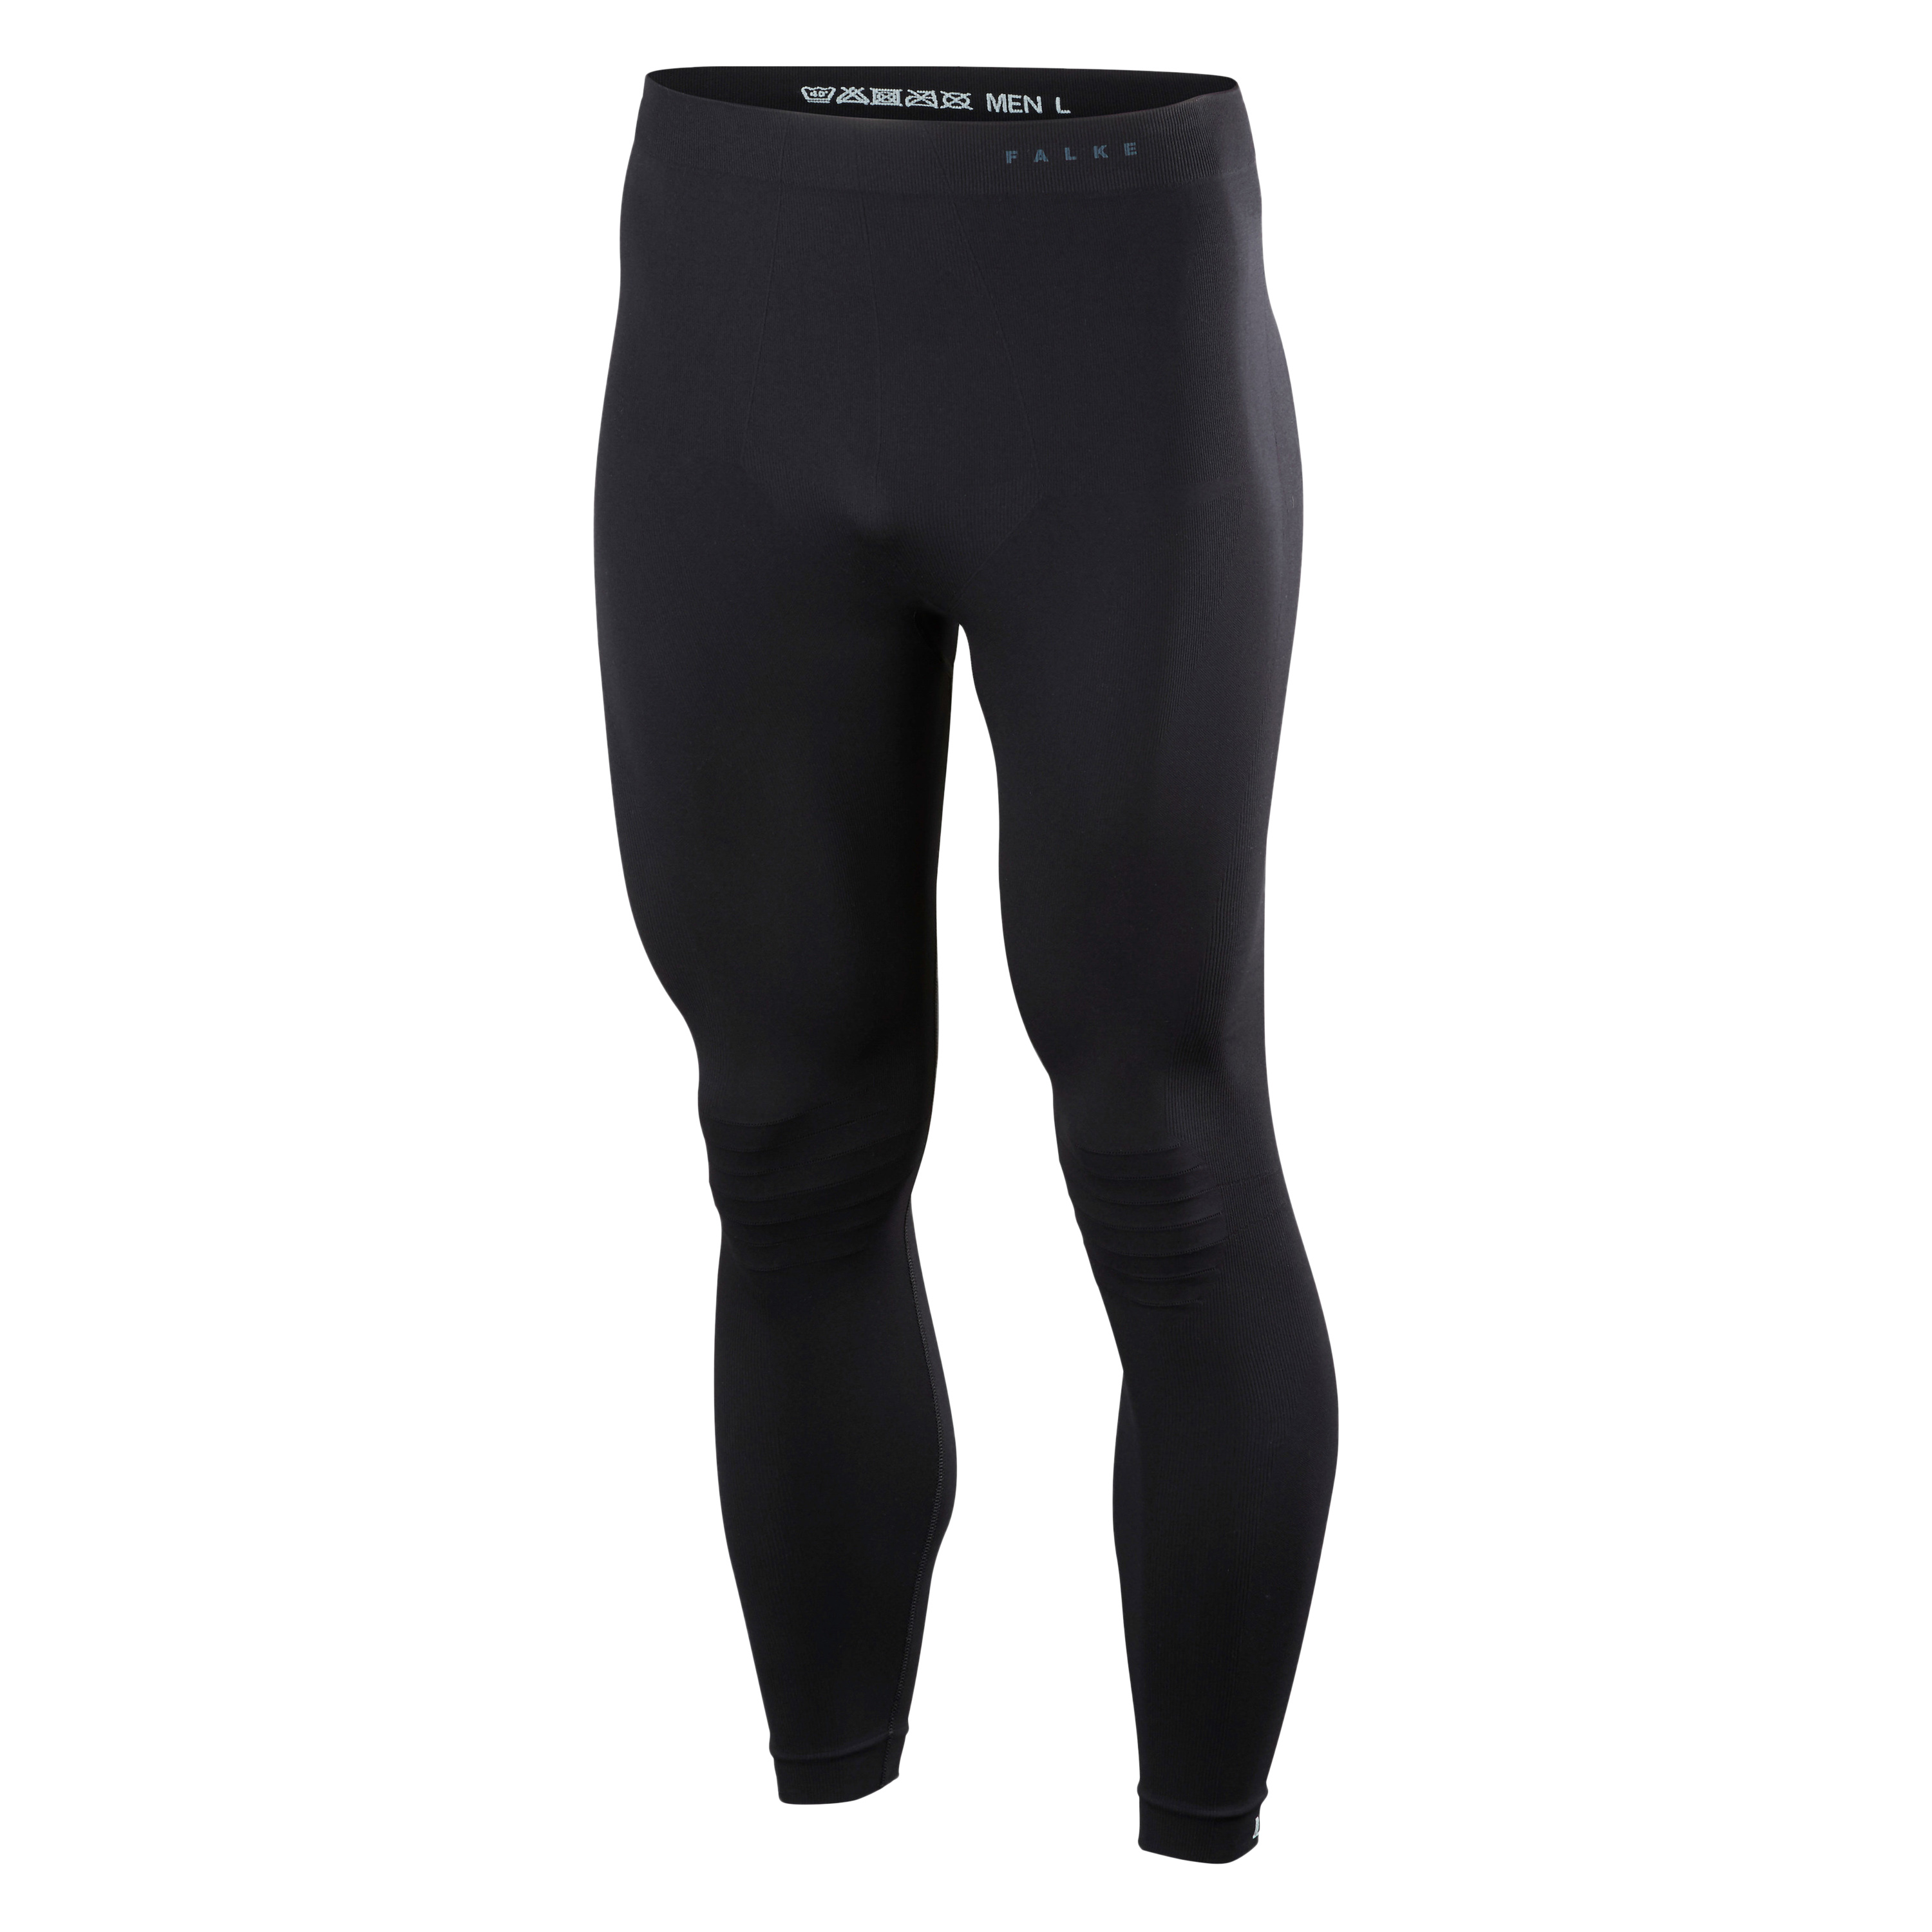 FALKE Leggings Tight Fit black